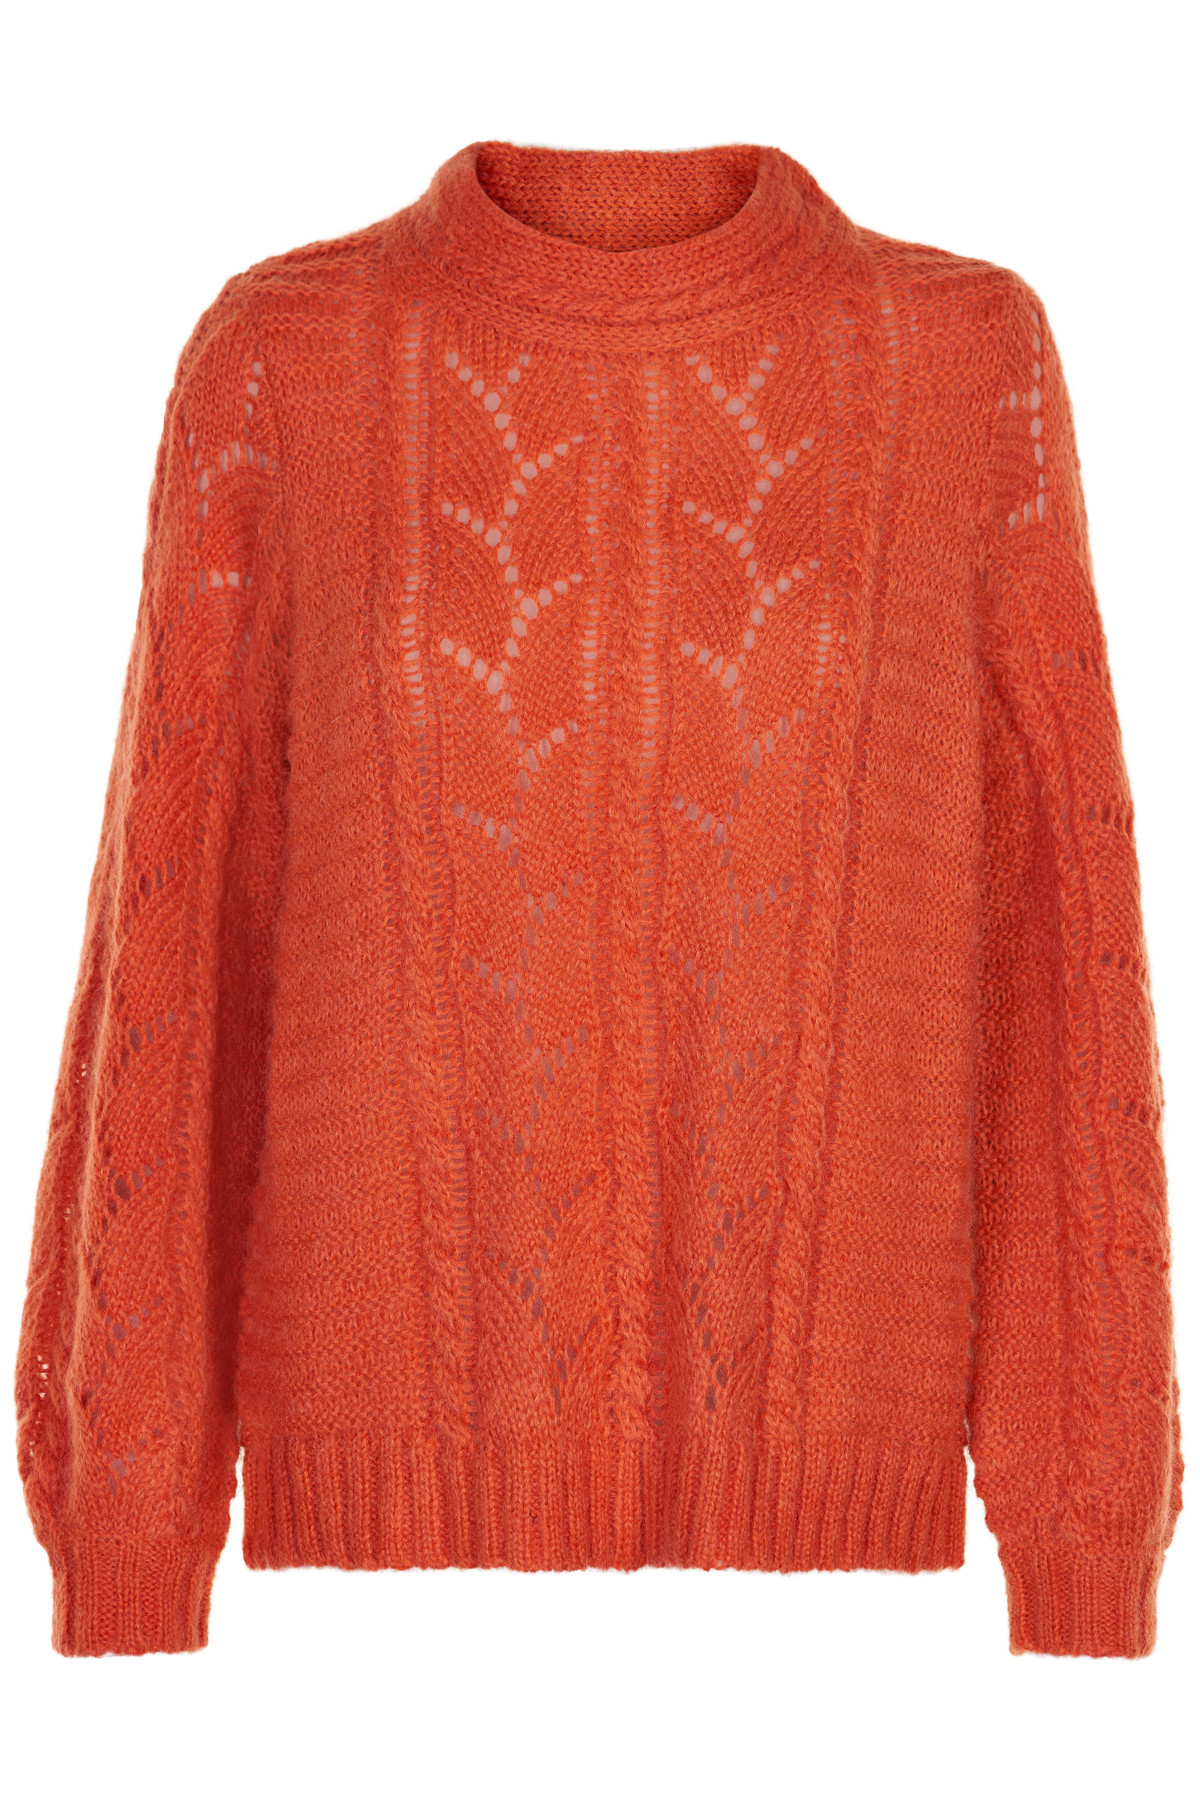 Image of   NOA NOA PULLOVER 1-9877-1 00883 (Red, L)